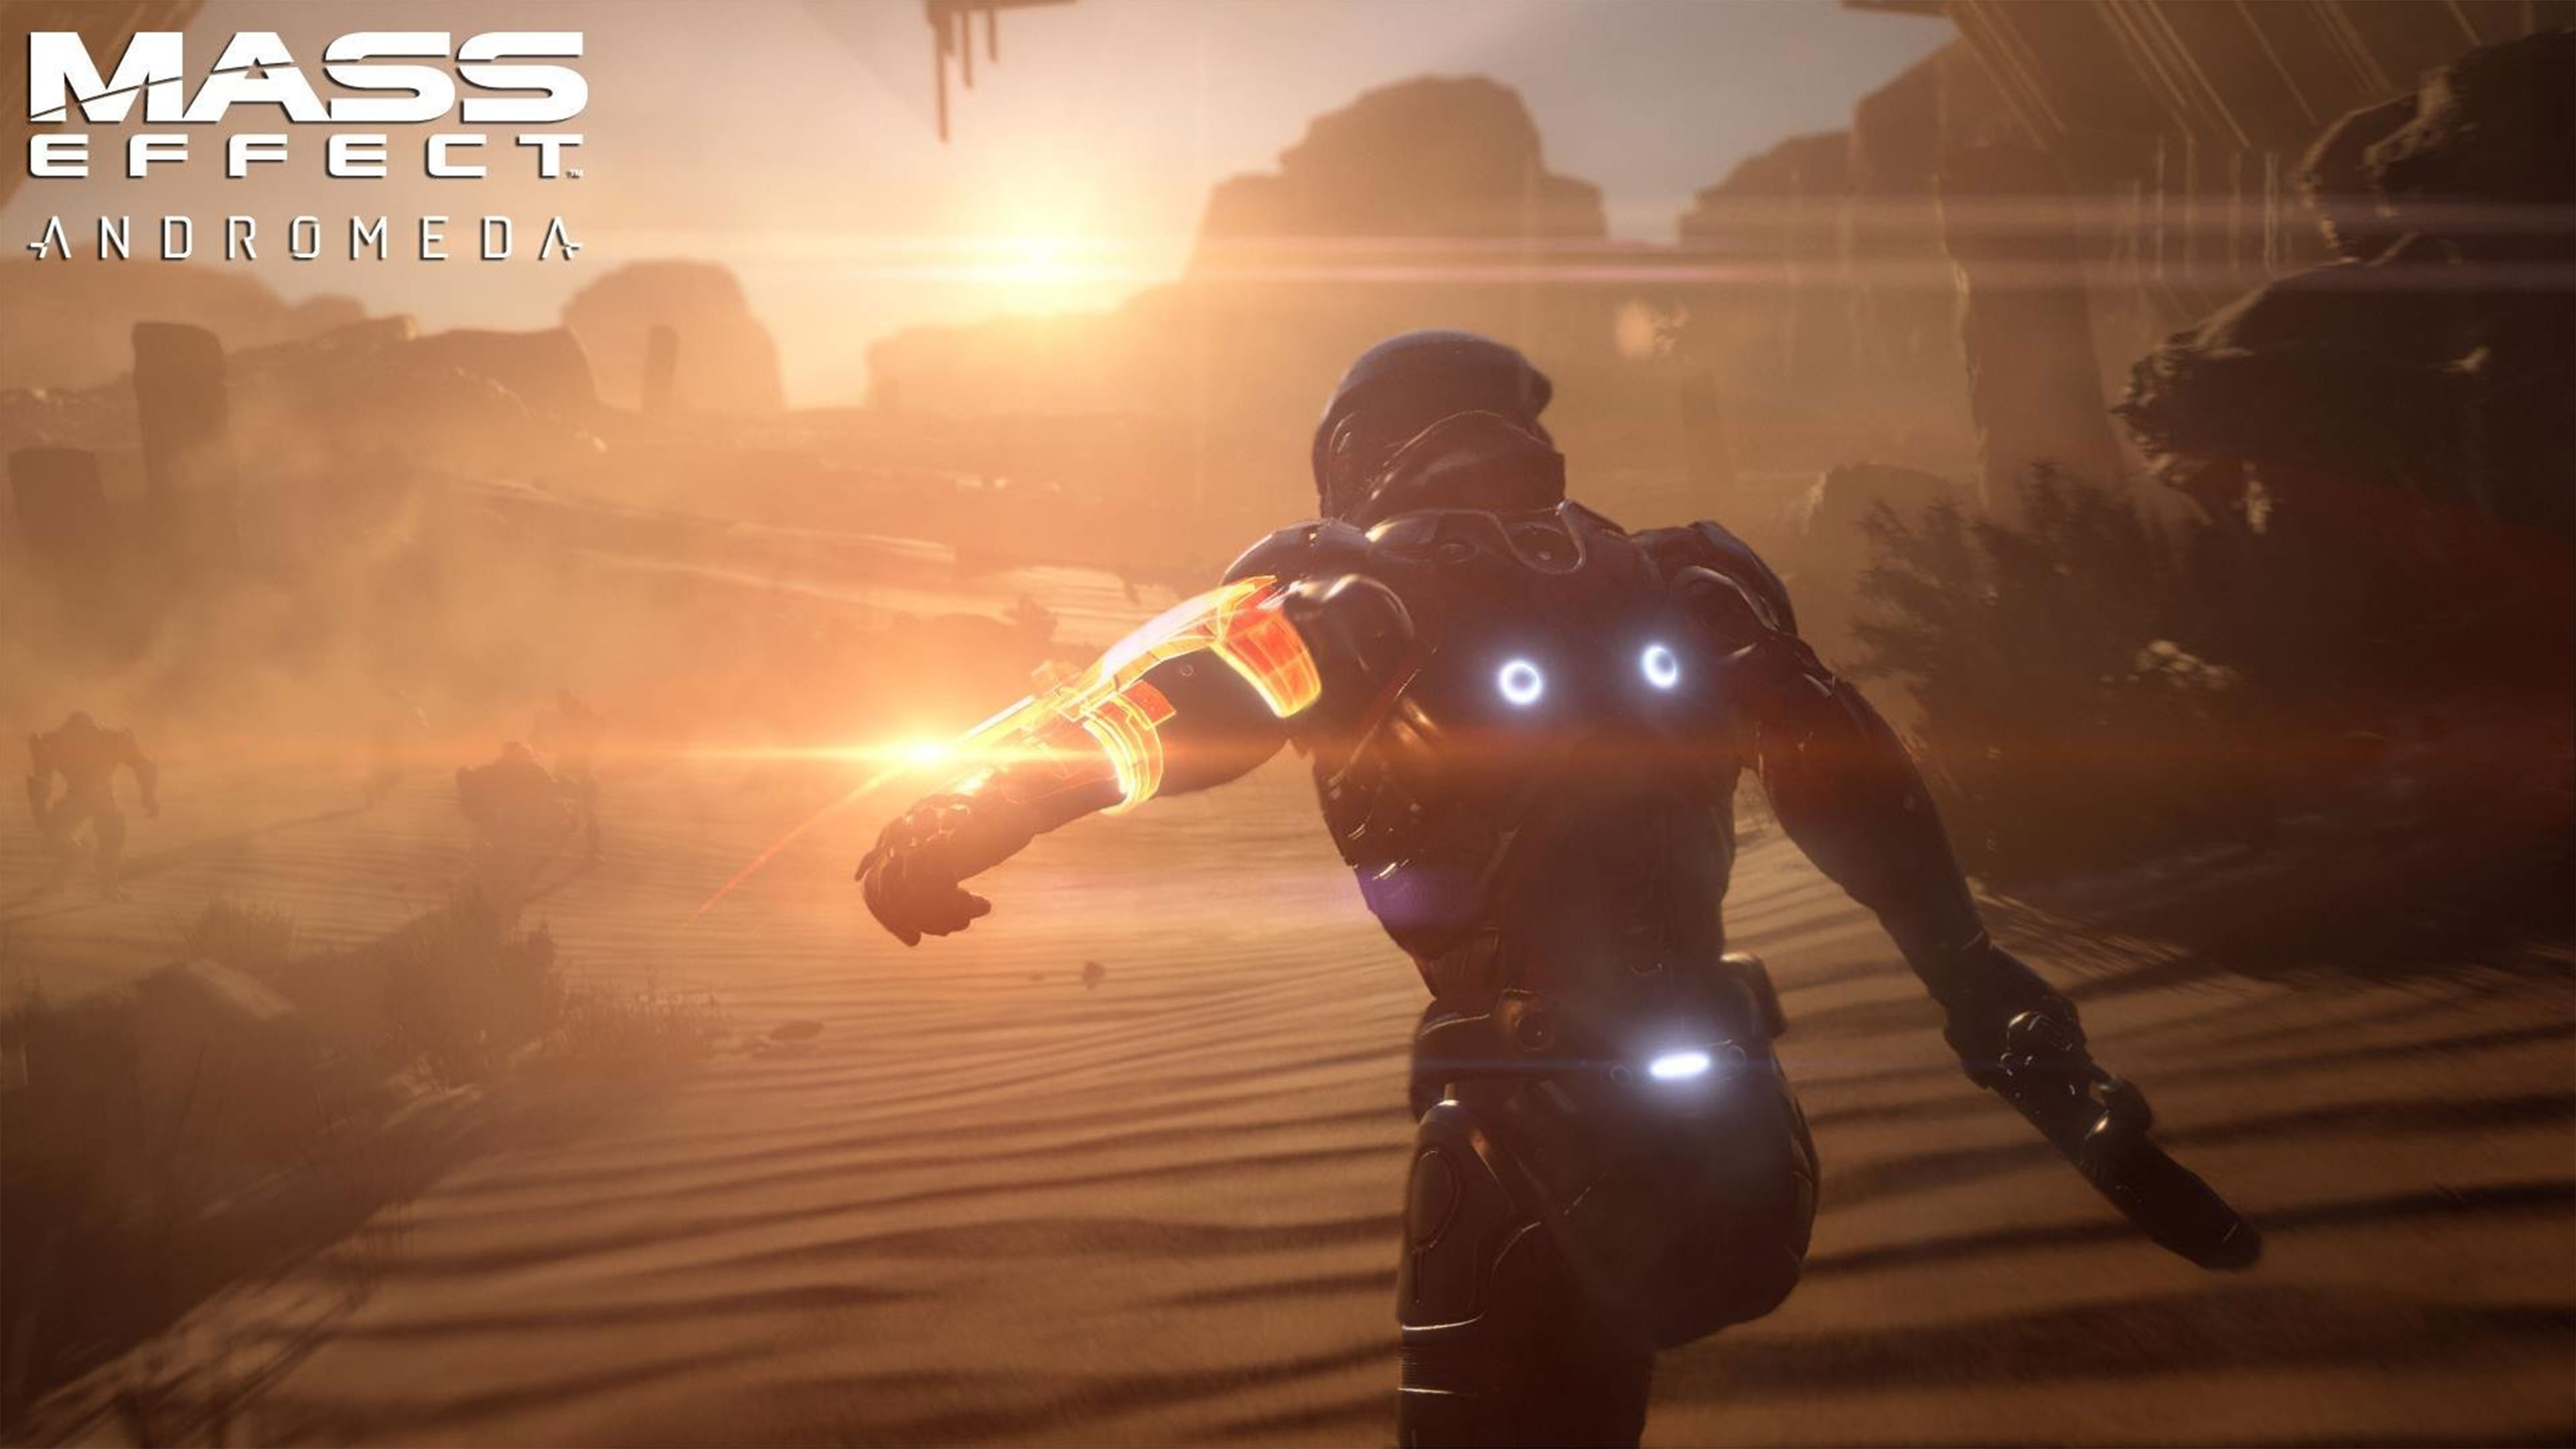 Mass Effect Andromeda Delayed to Early 2017, Suggests EA CFO